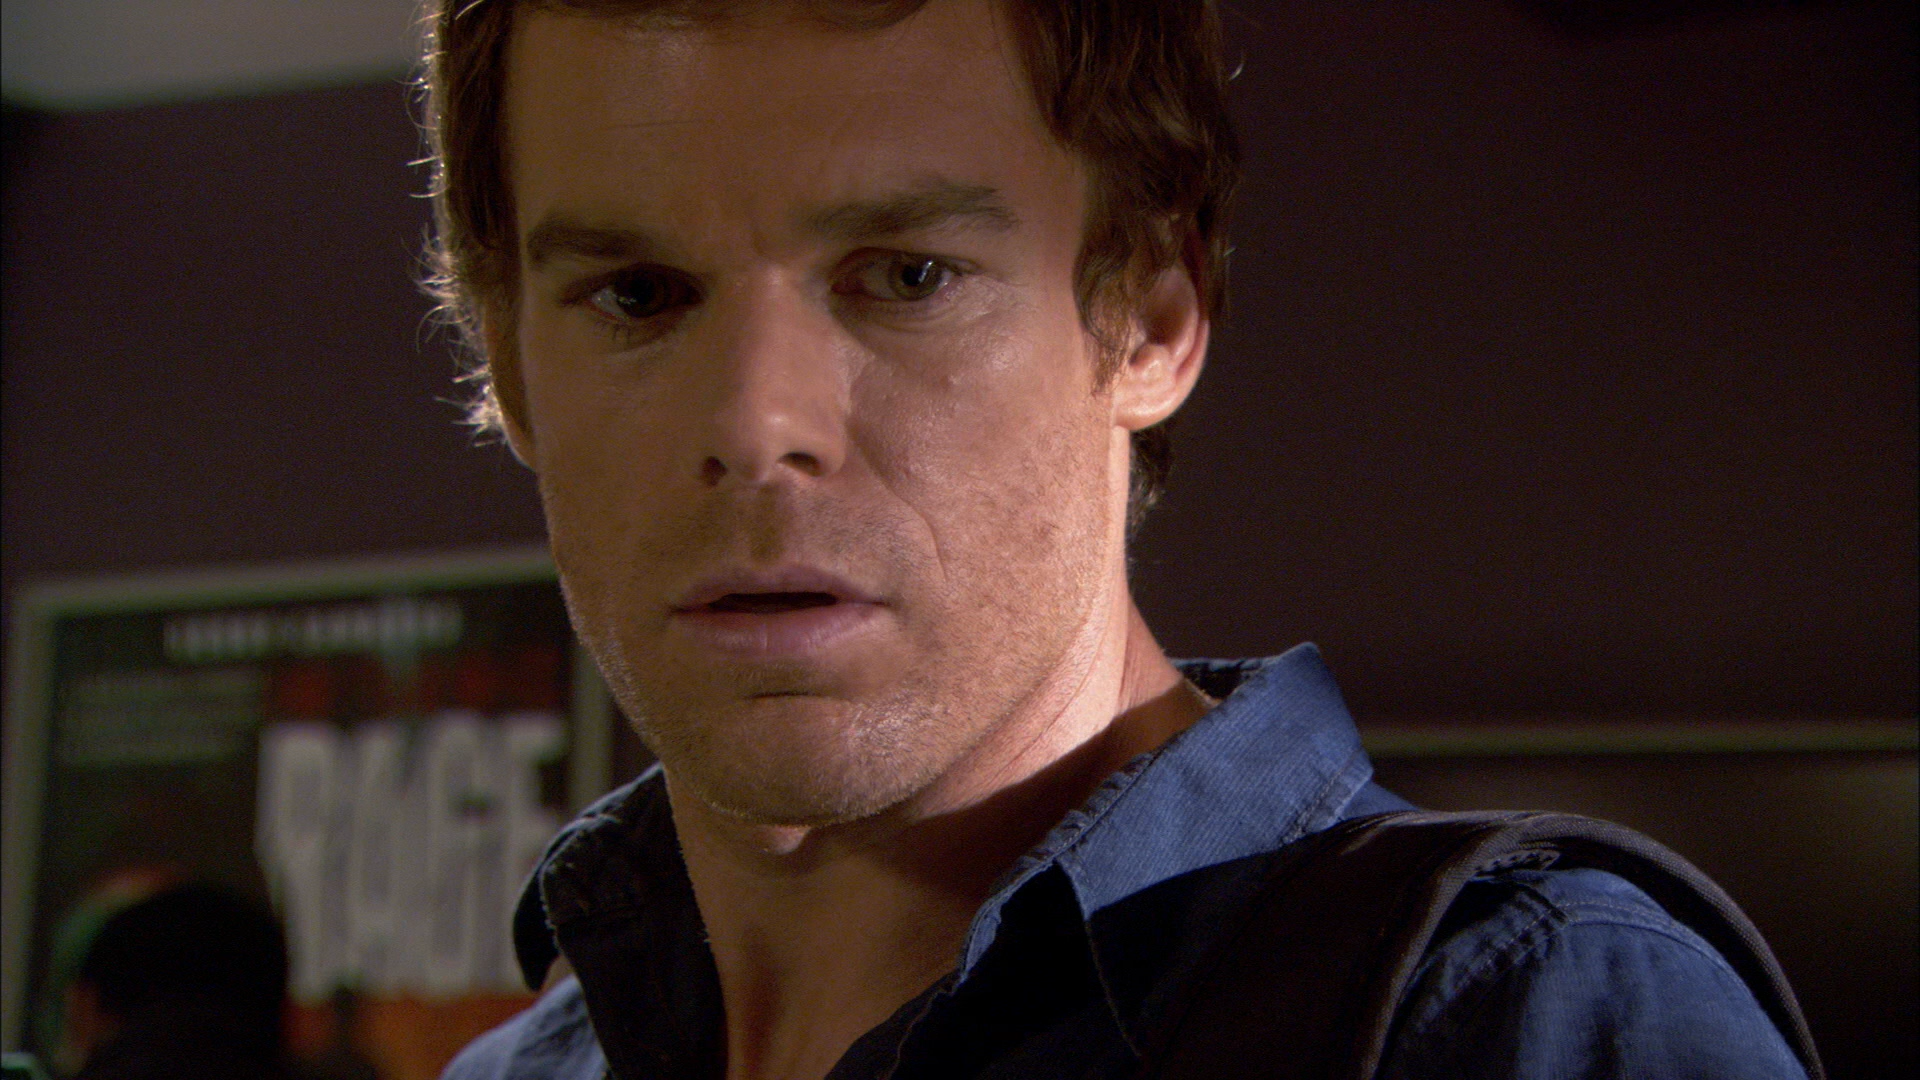 dexter dating show Dexter star michael c hall is secretly dating his onscreen sister jennifer carpenter, despite the disapproval of their tv bosses the pair plays siblings dexter and debra morgan in the hit.